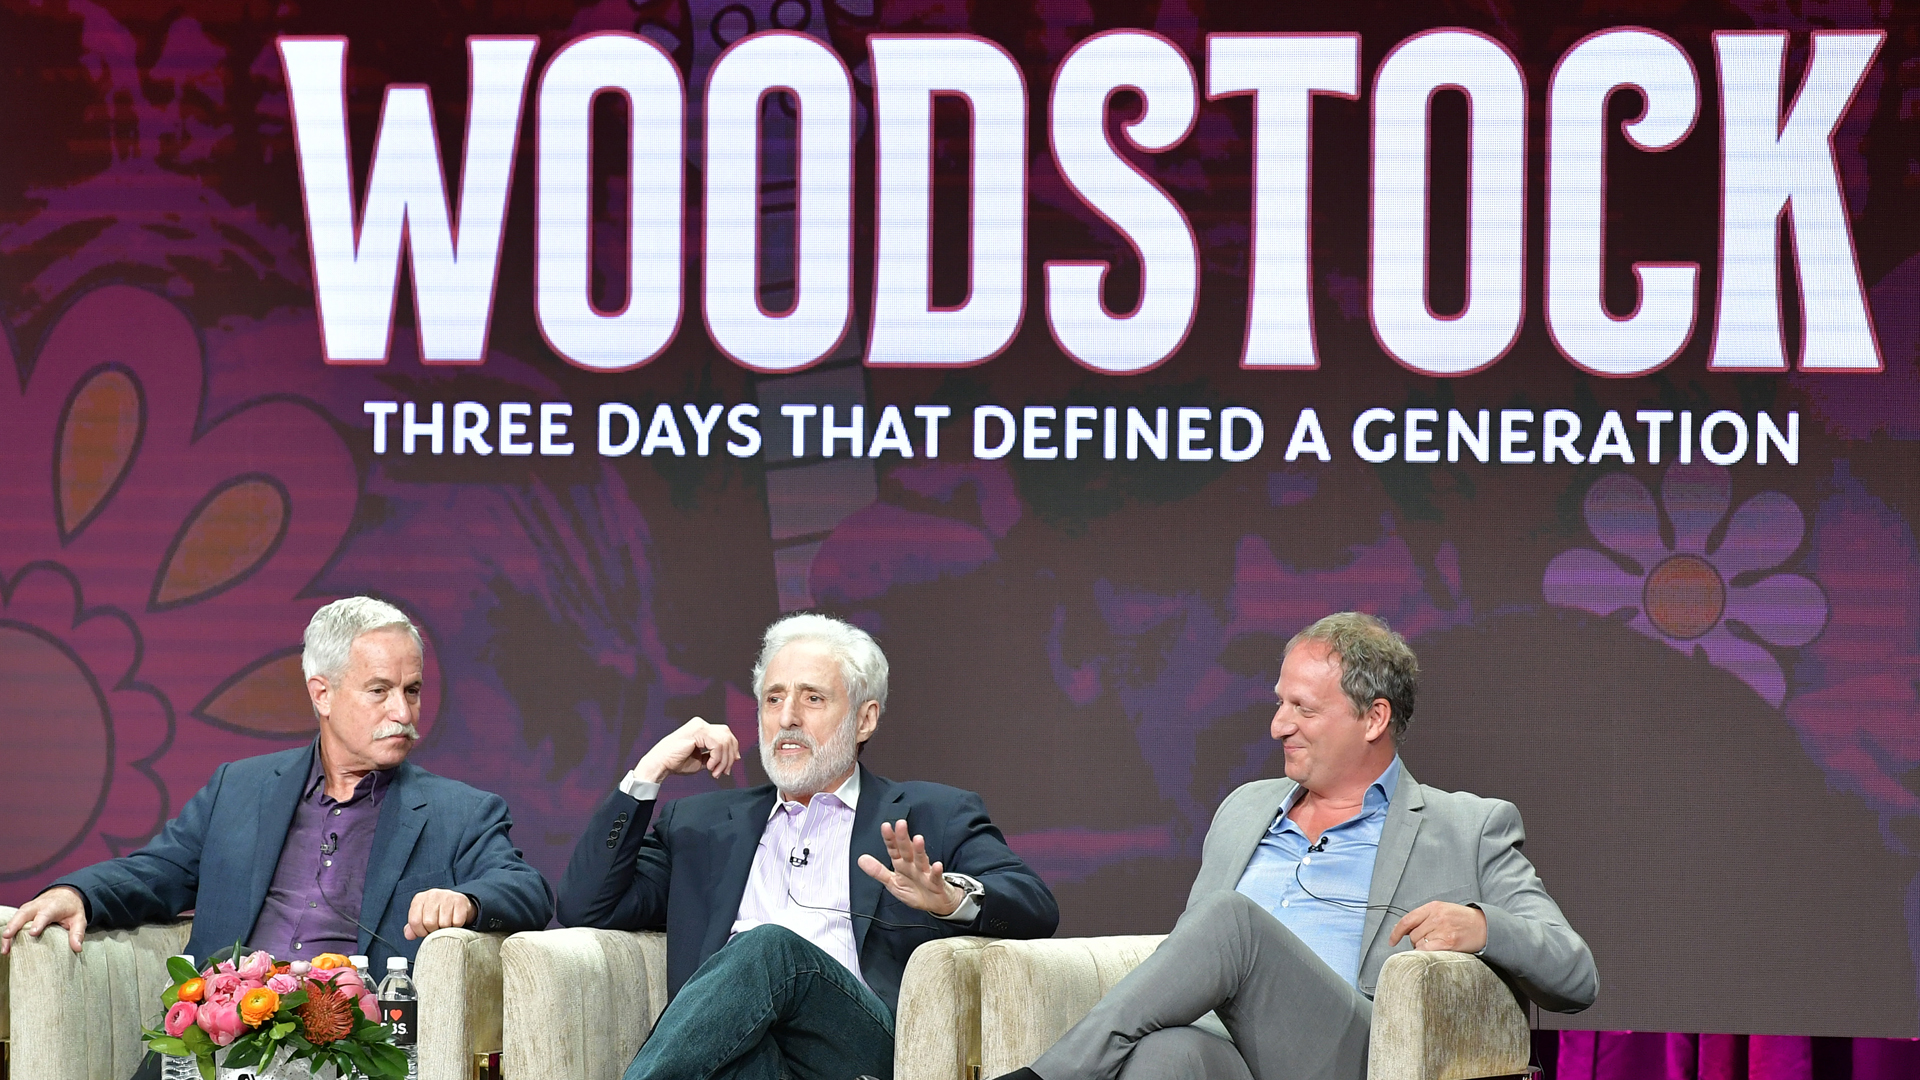 """(L-R) Joel Makower, Joel Rosenman and Barak Goodman of """"Woodstock: Three Days that Defined a Generation"""" speak during the 2019 Summer TCA press tour at The Beverly Hilton Hotel on July 30, 2019 in Beverly Hills, California. (Credit: Amy Sussman/Getty Images)"""